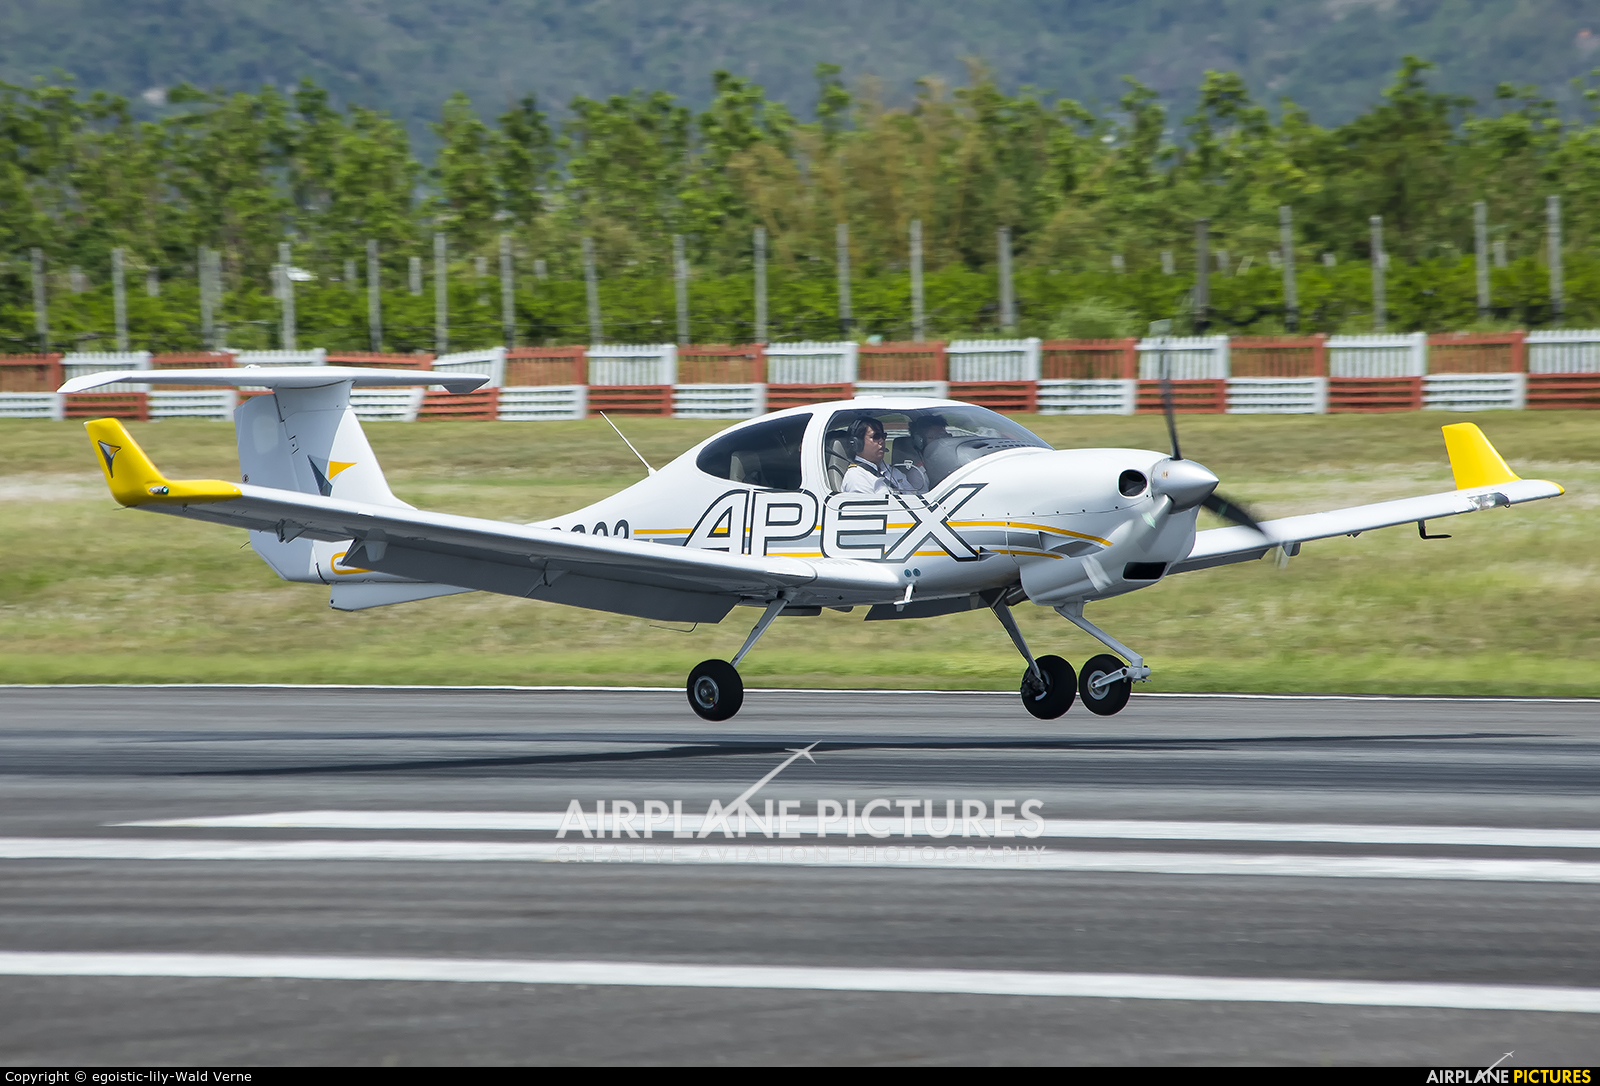 APEX Flight Academy B-88003 aircraft at Taitung/Taidong Airport